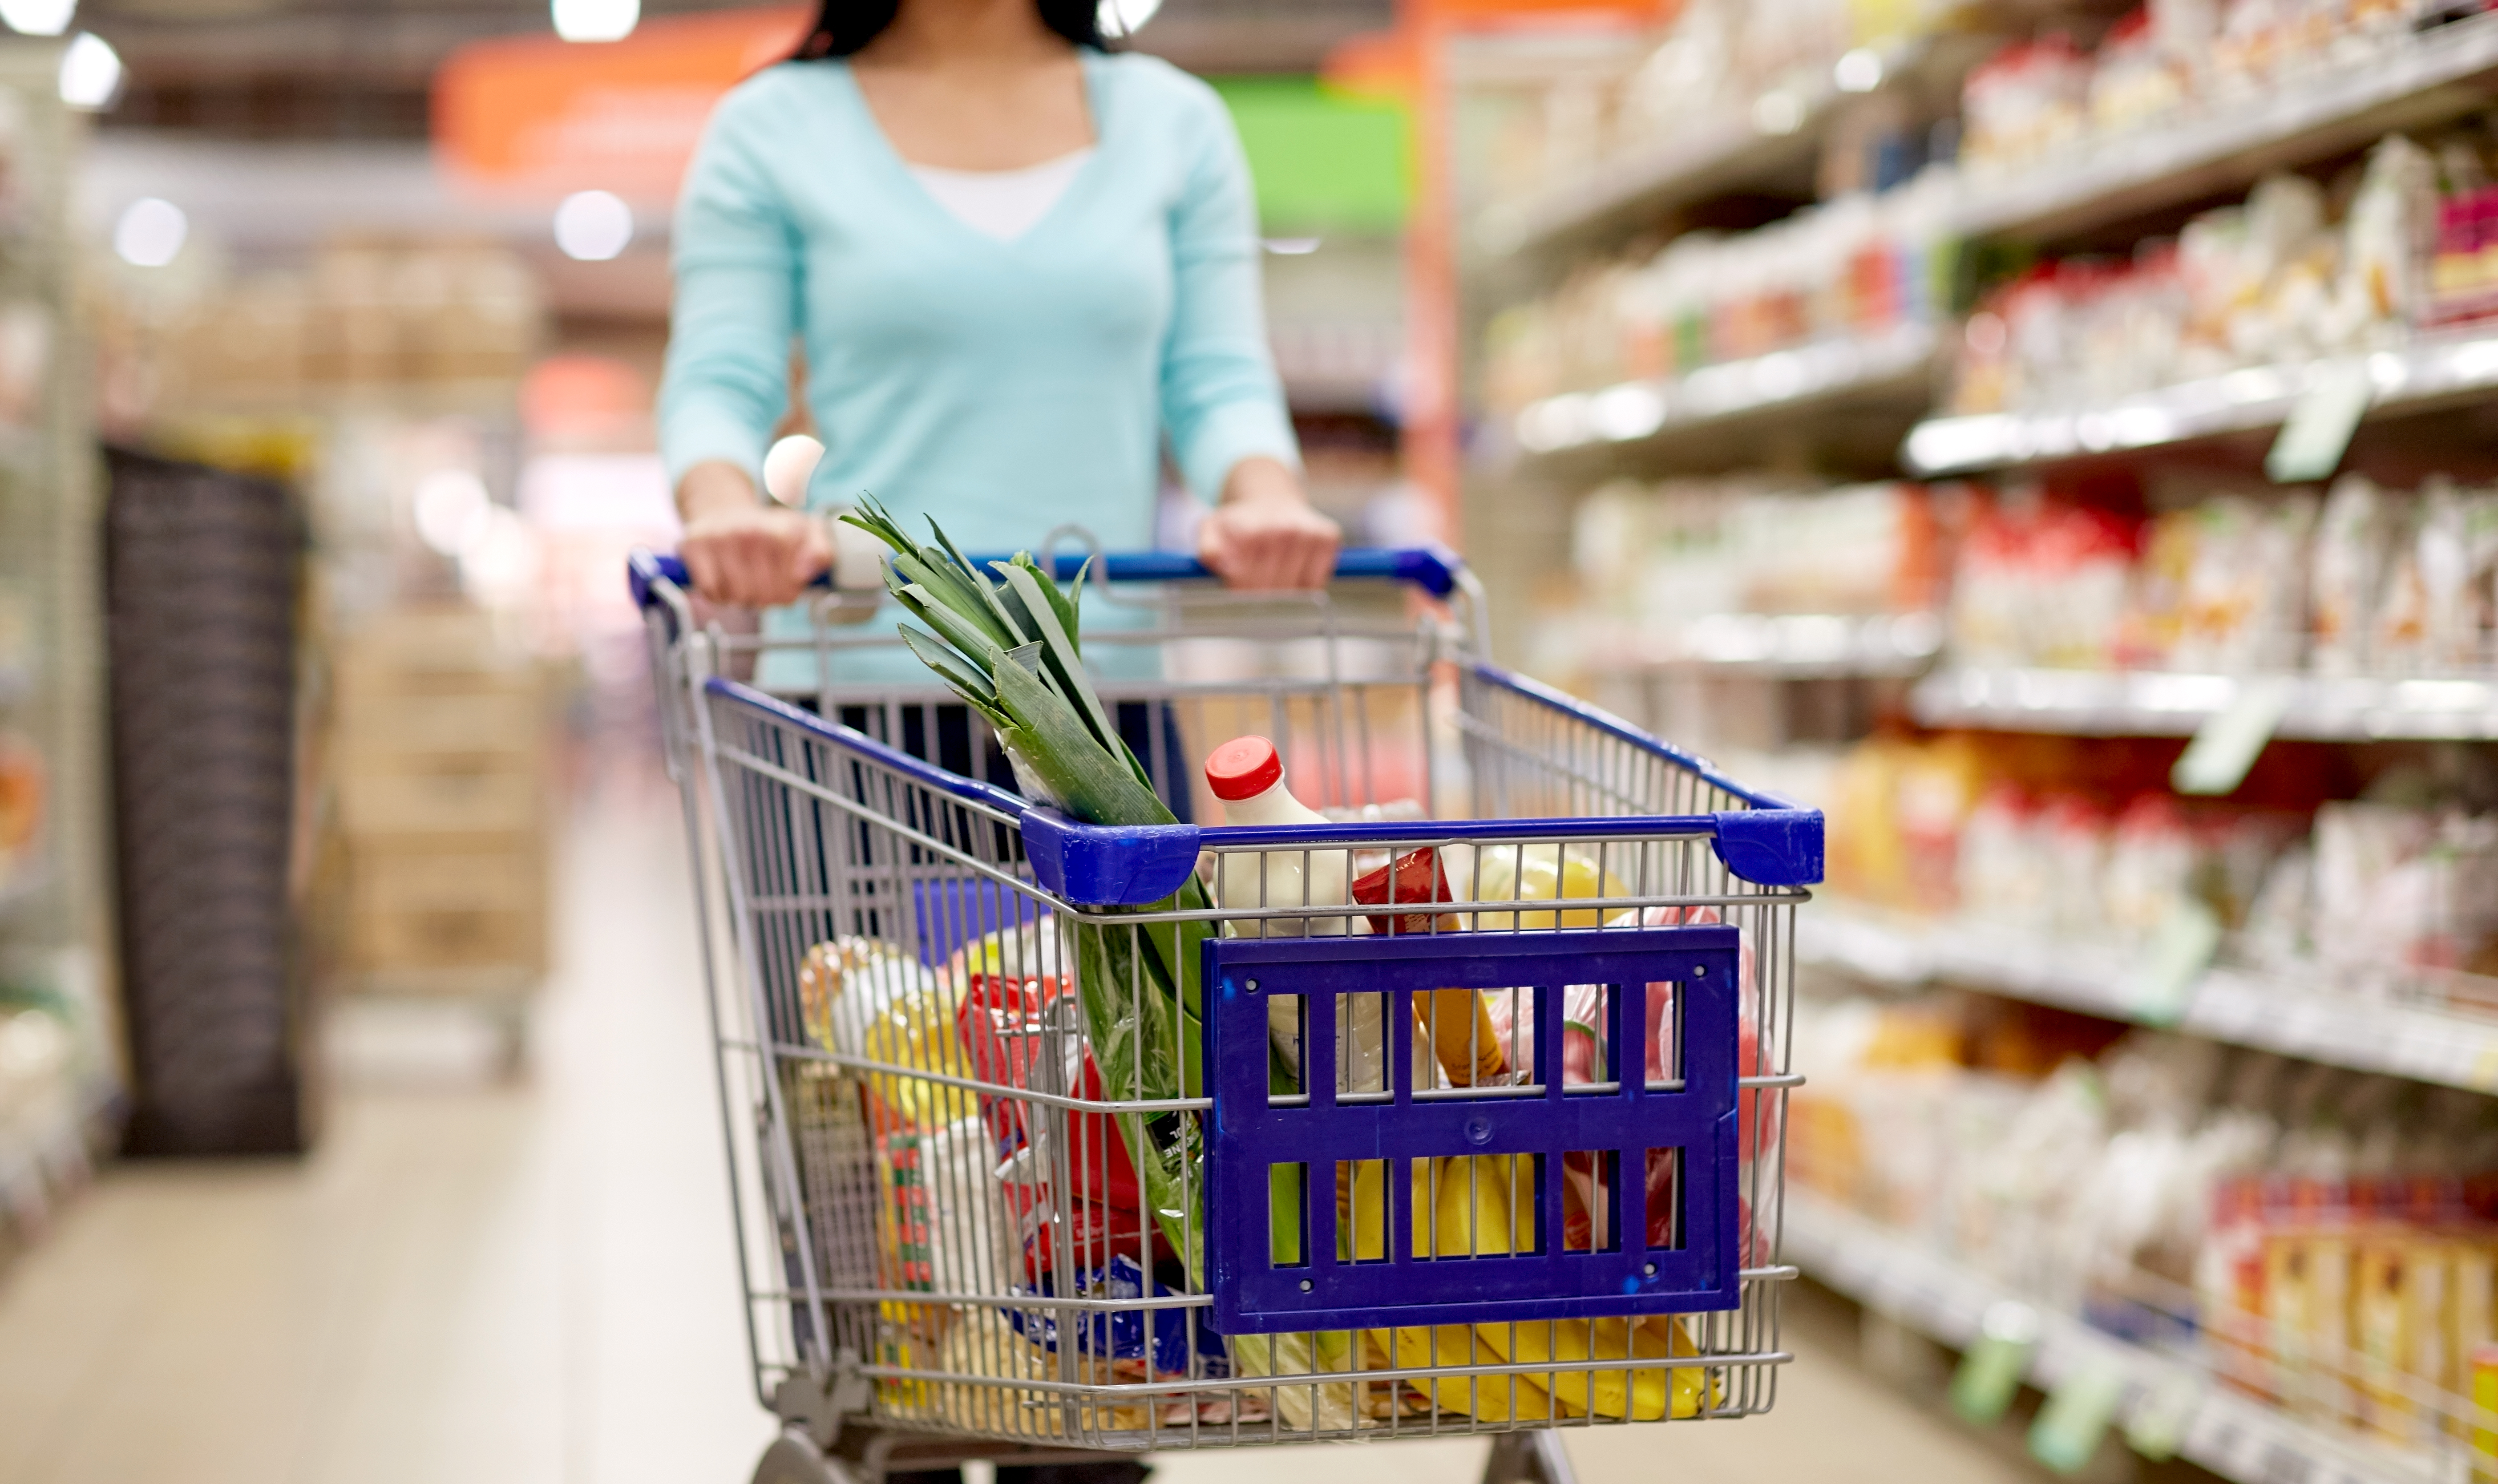 woman-with-food-in-shopping-cart-at-supermarket-PLC9VSJ